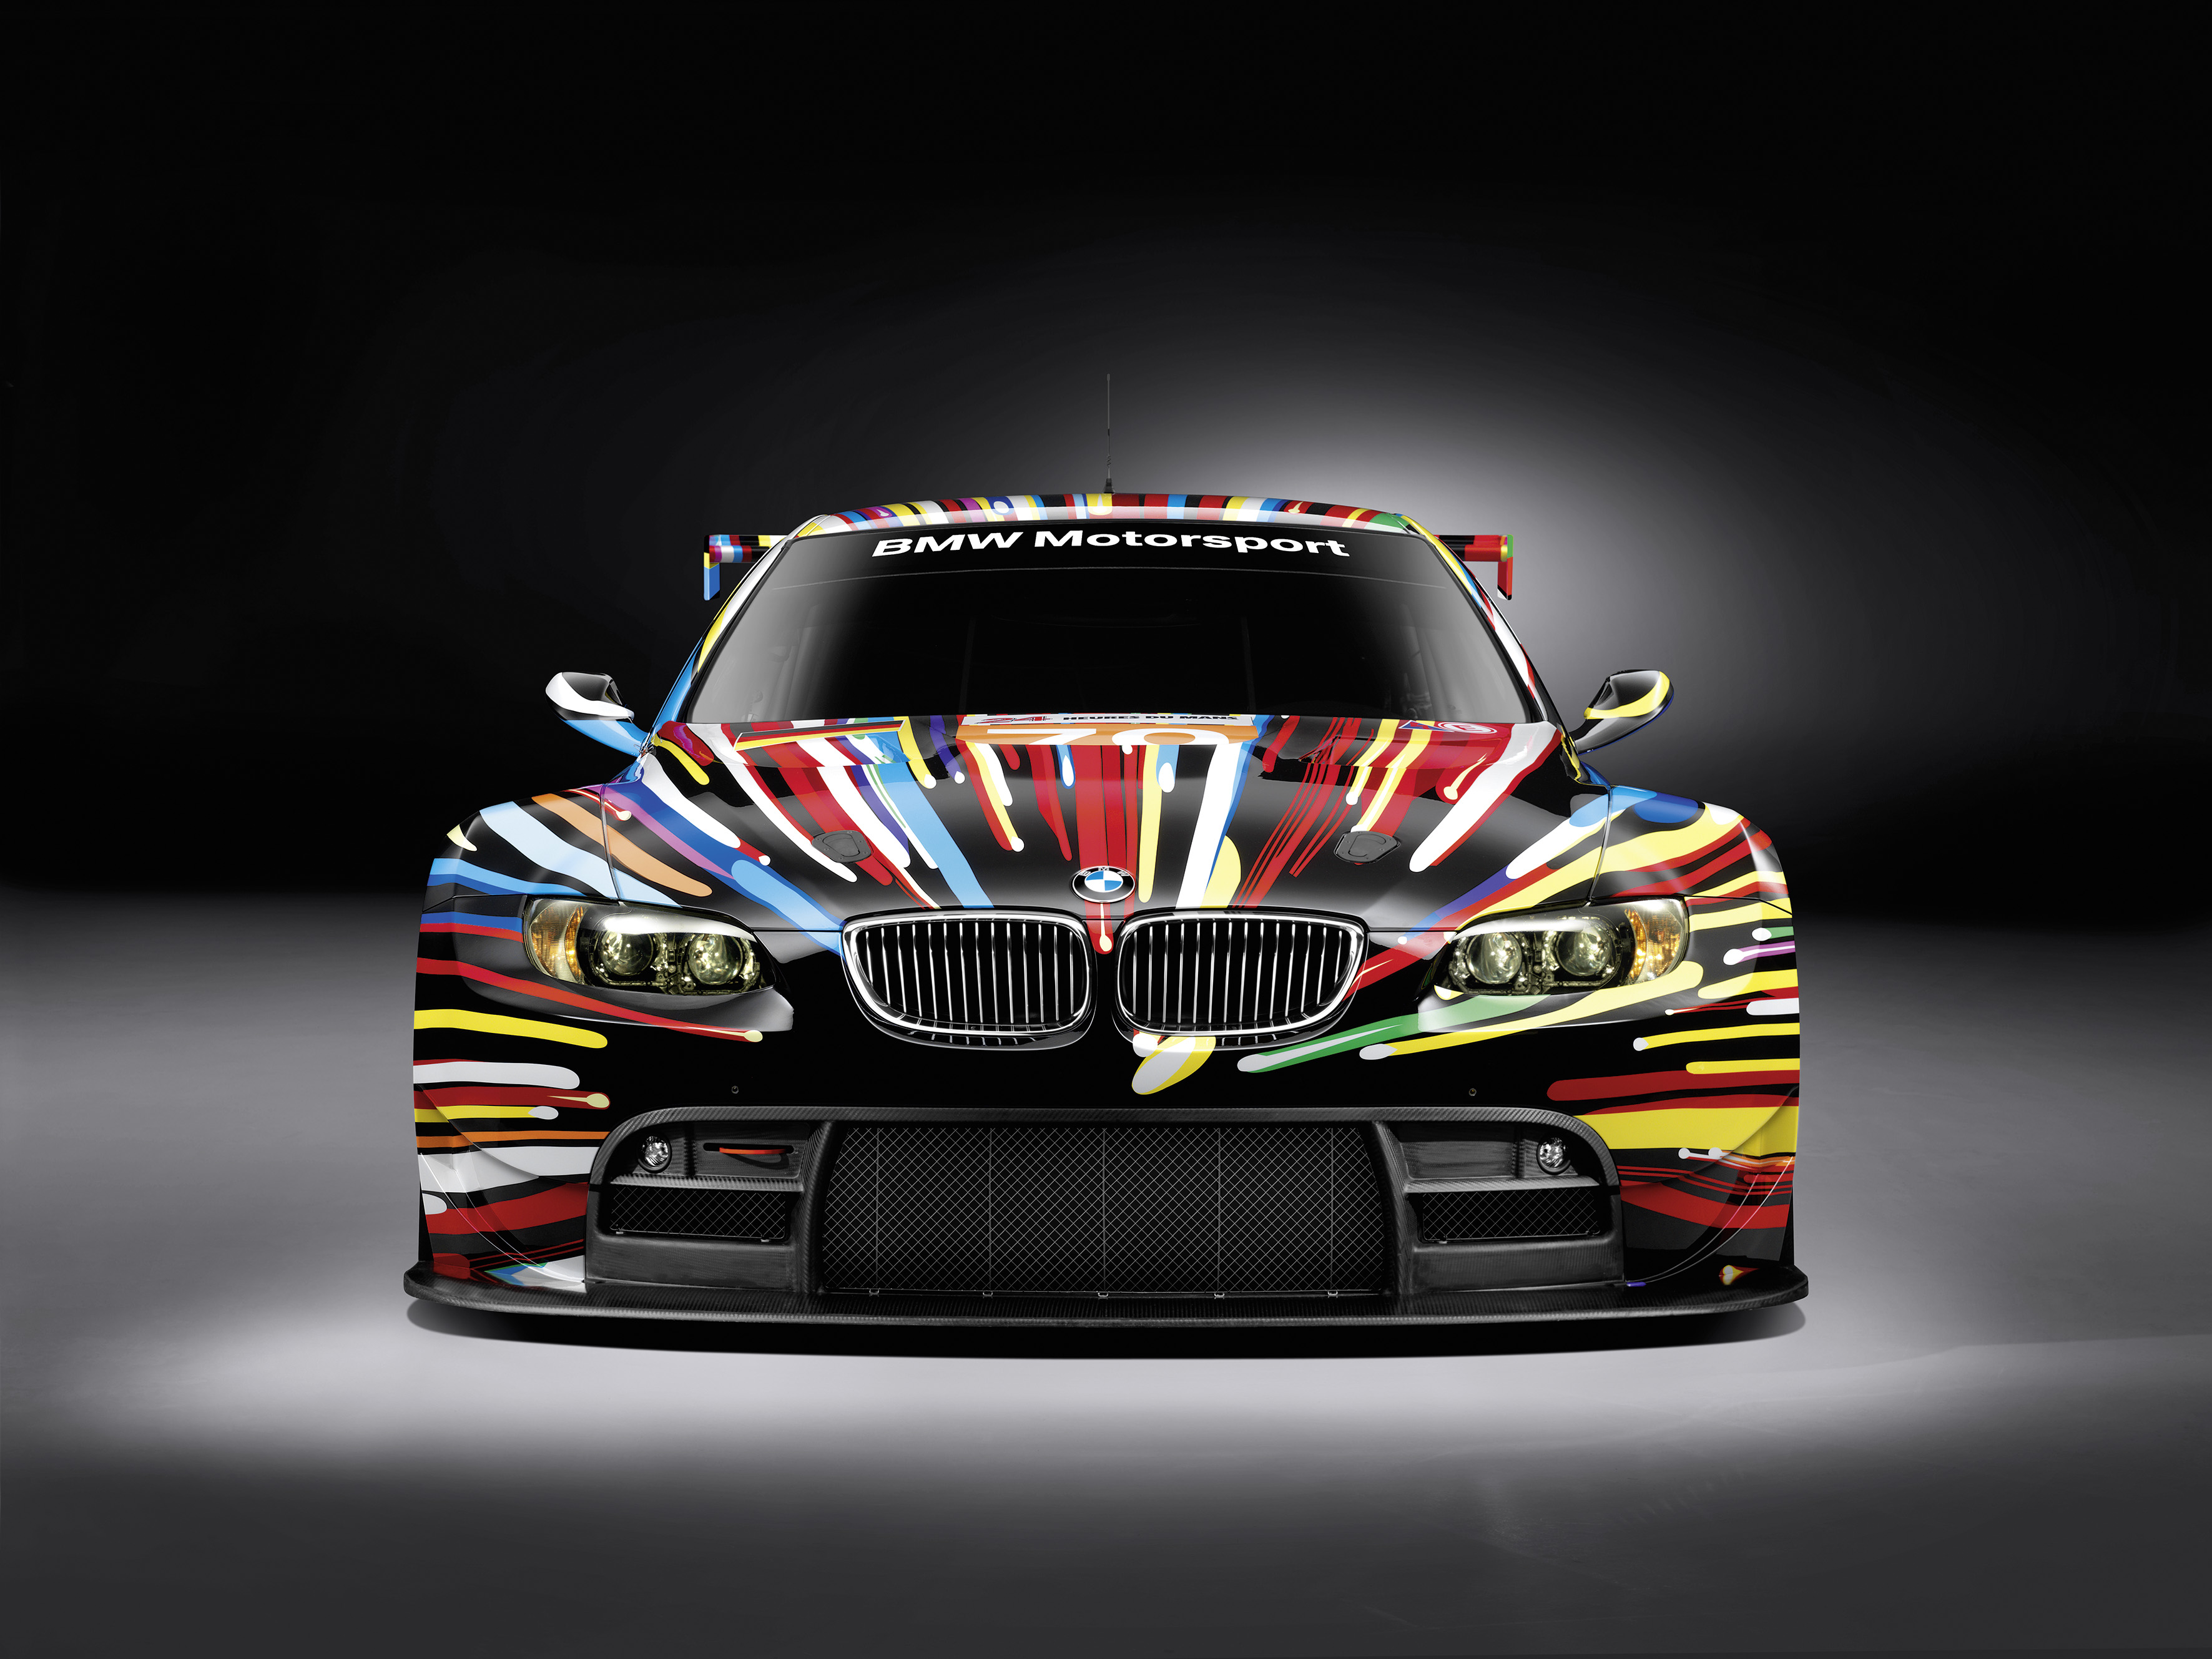 De BMW M3 Art Car, ontworpen door Jeff Koons, te bewonderen in Brussel.